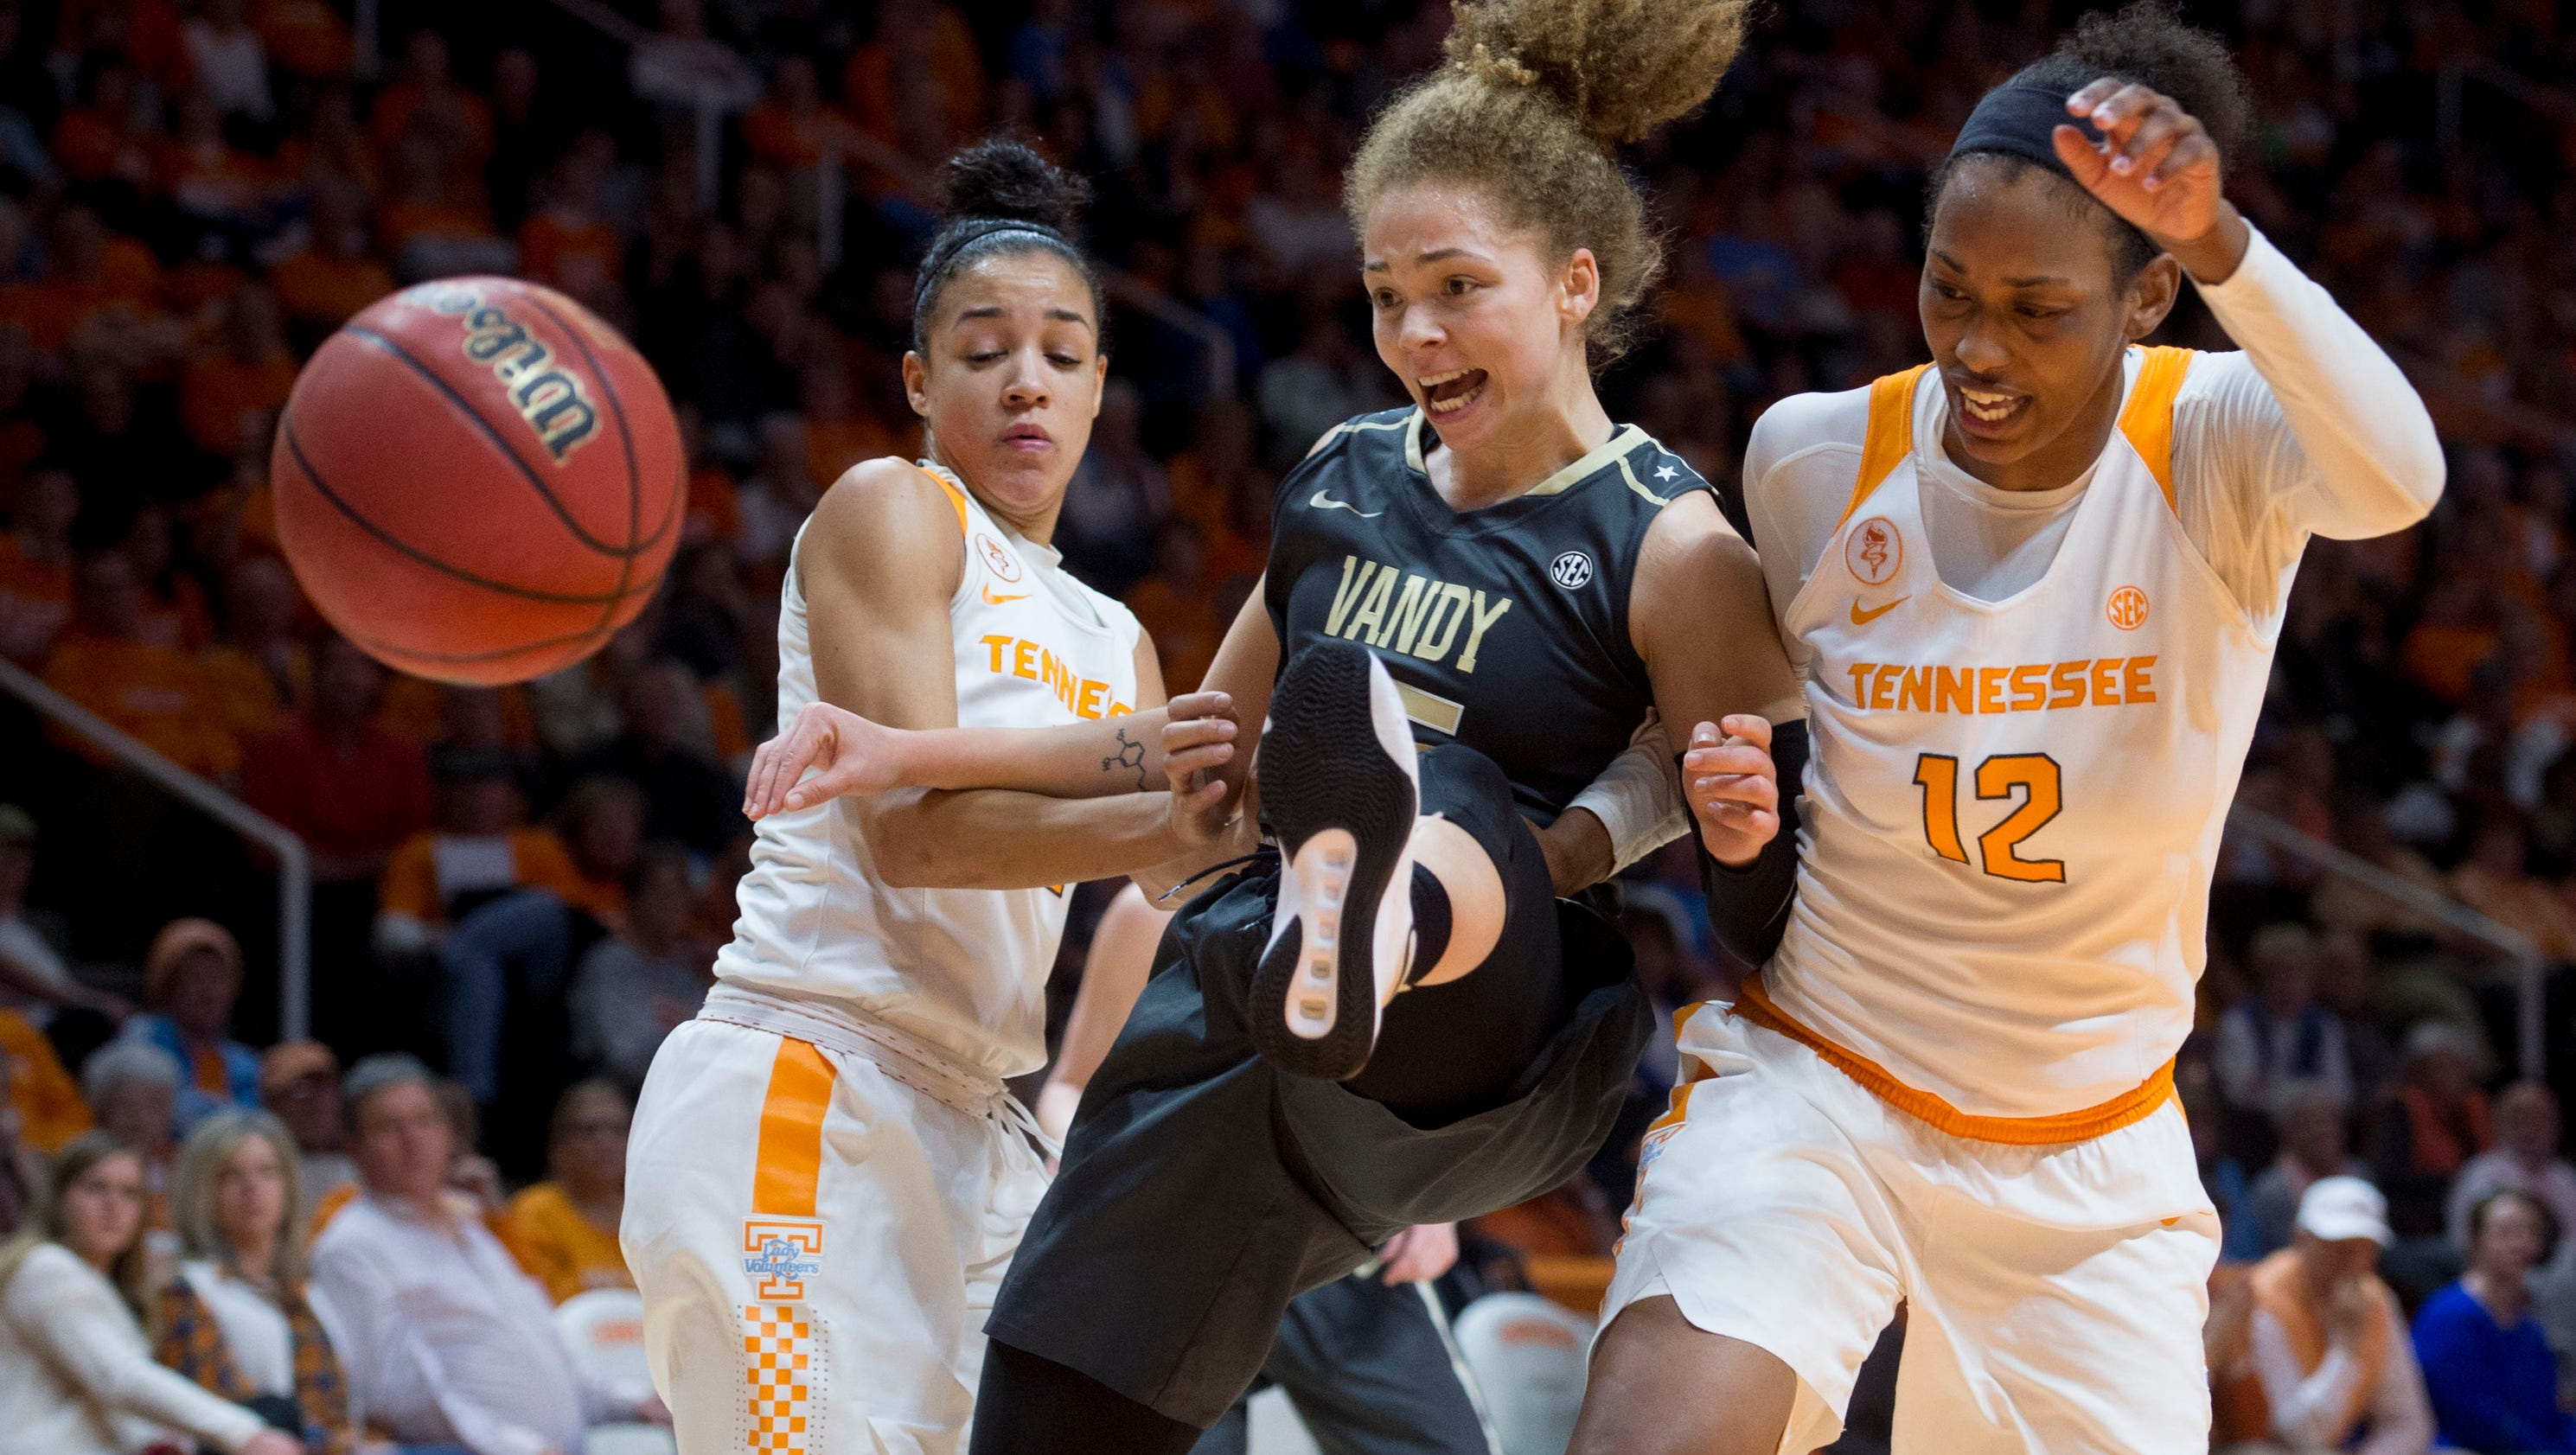 635890132127657334-vanderbilt-tennessee-basketball